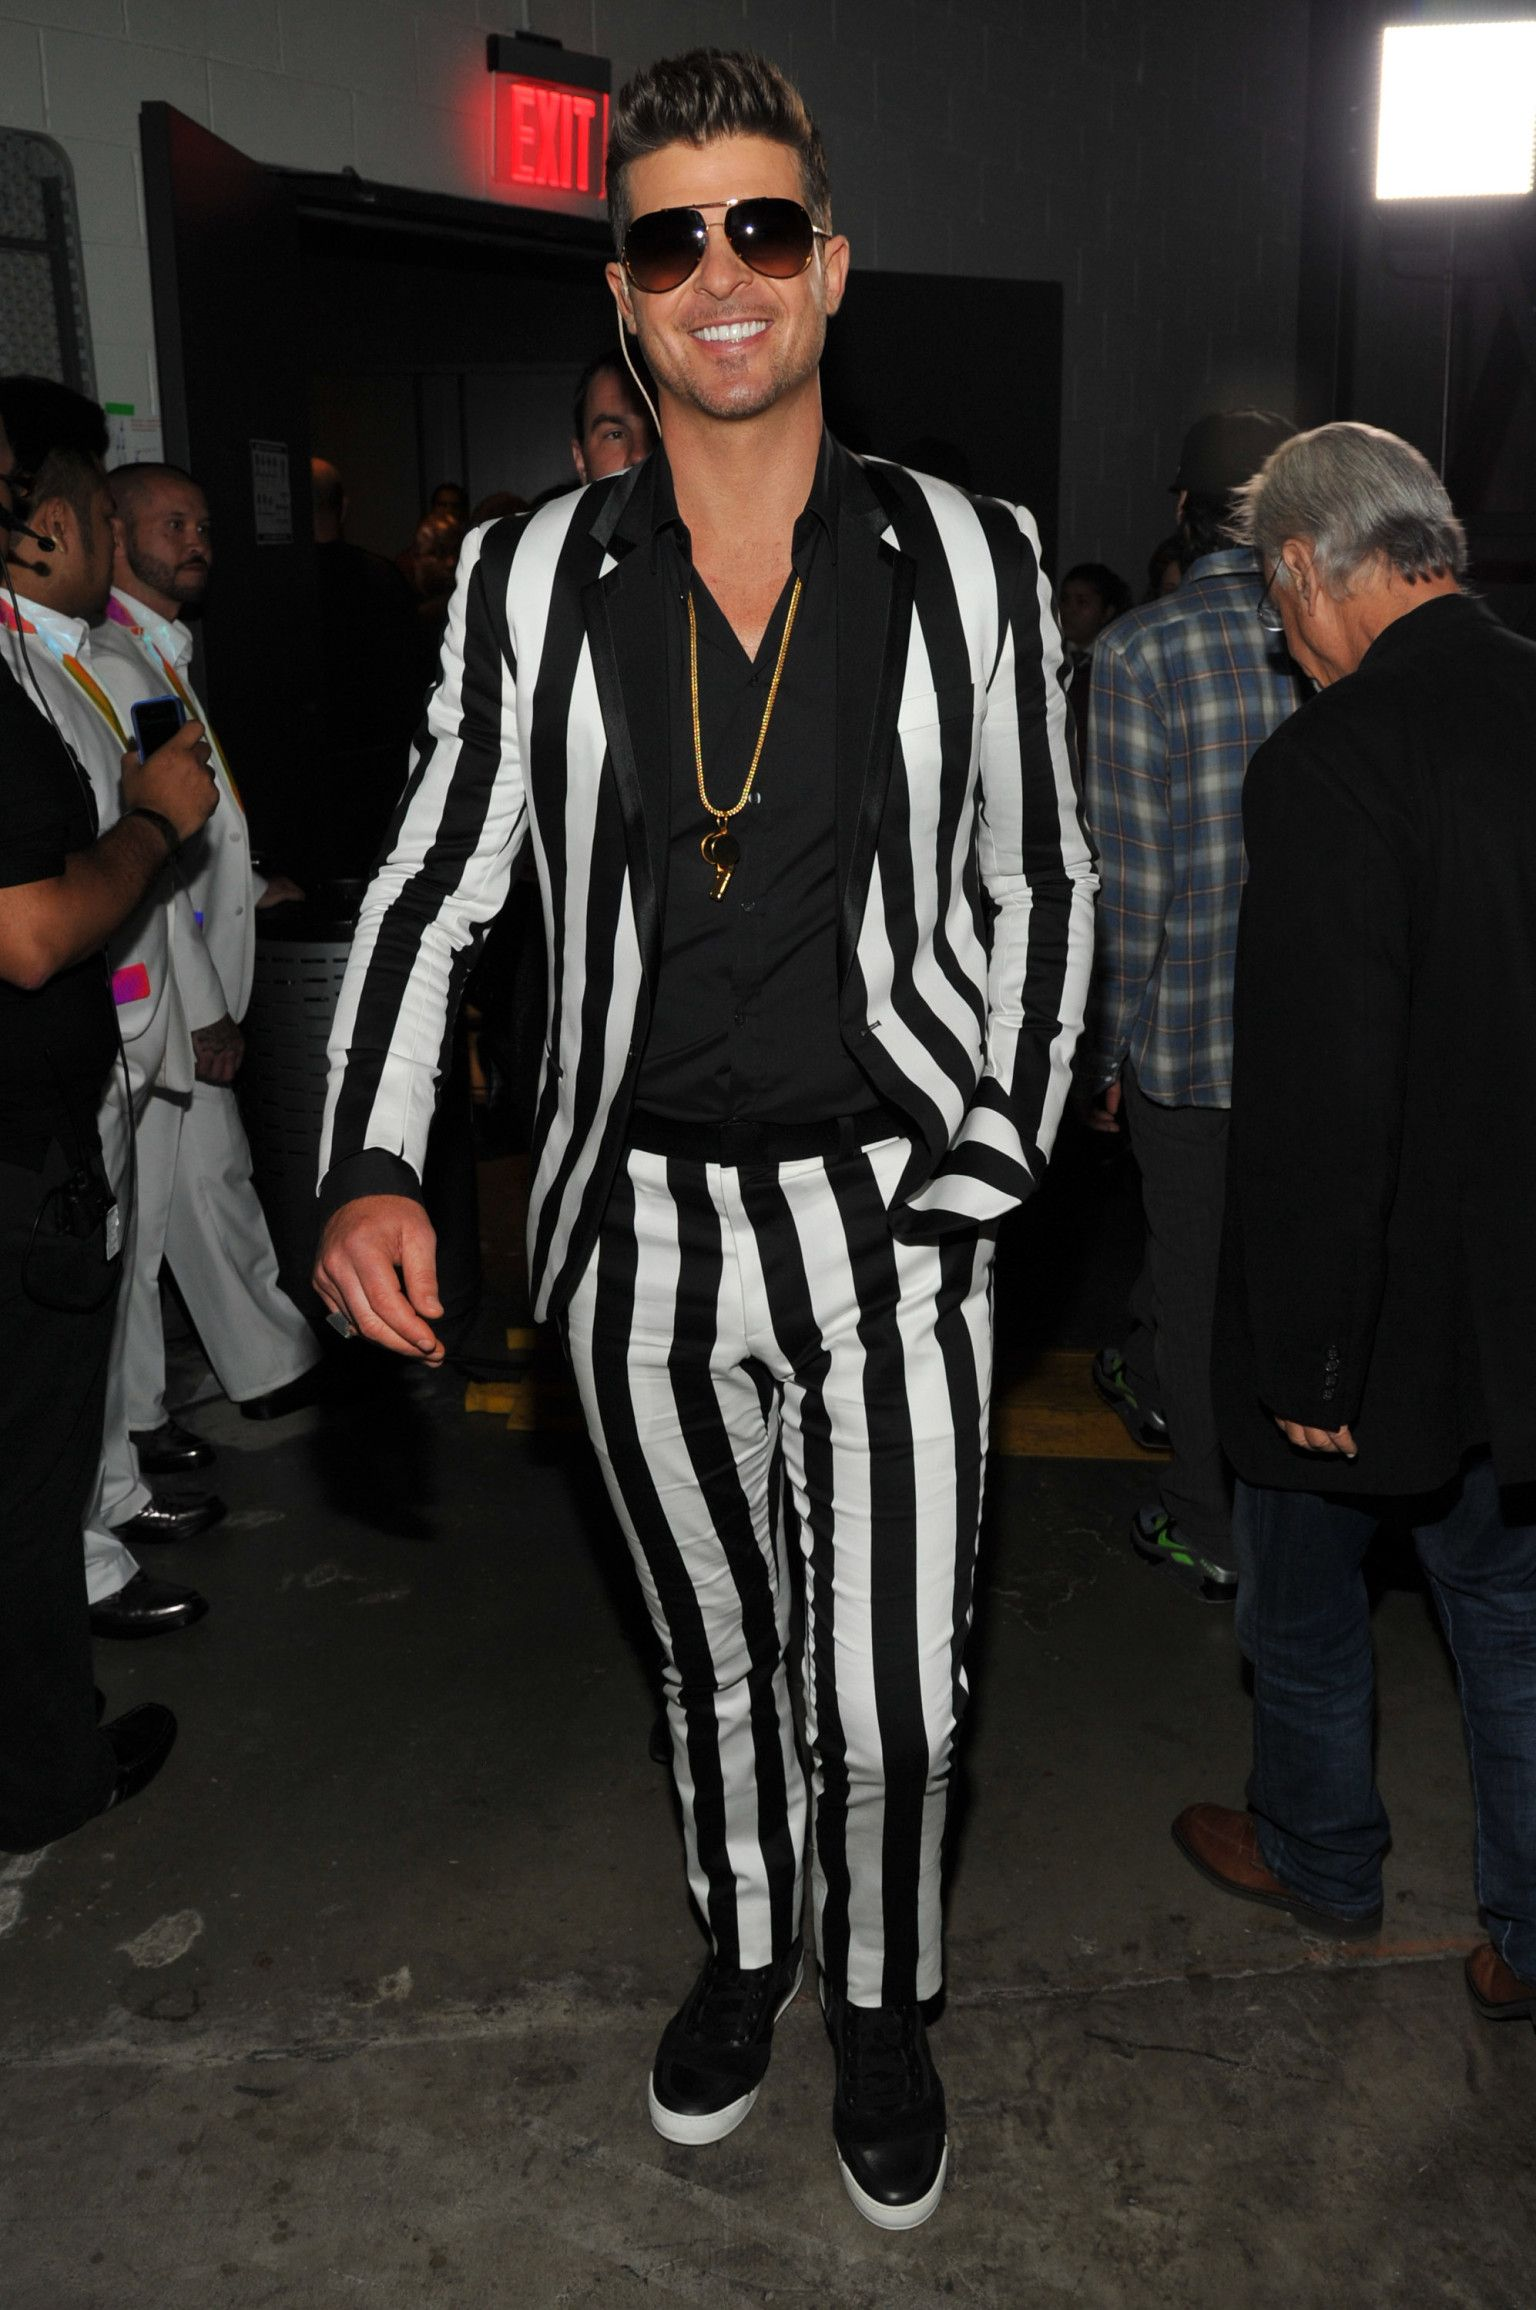 Robinthicke S Vmas Suit With Very Thick Non Blurredlines Rhymeswithhugme Robin Thicke Fashion Vmas